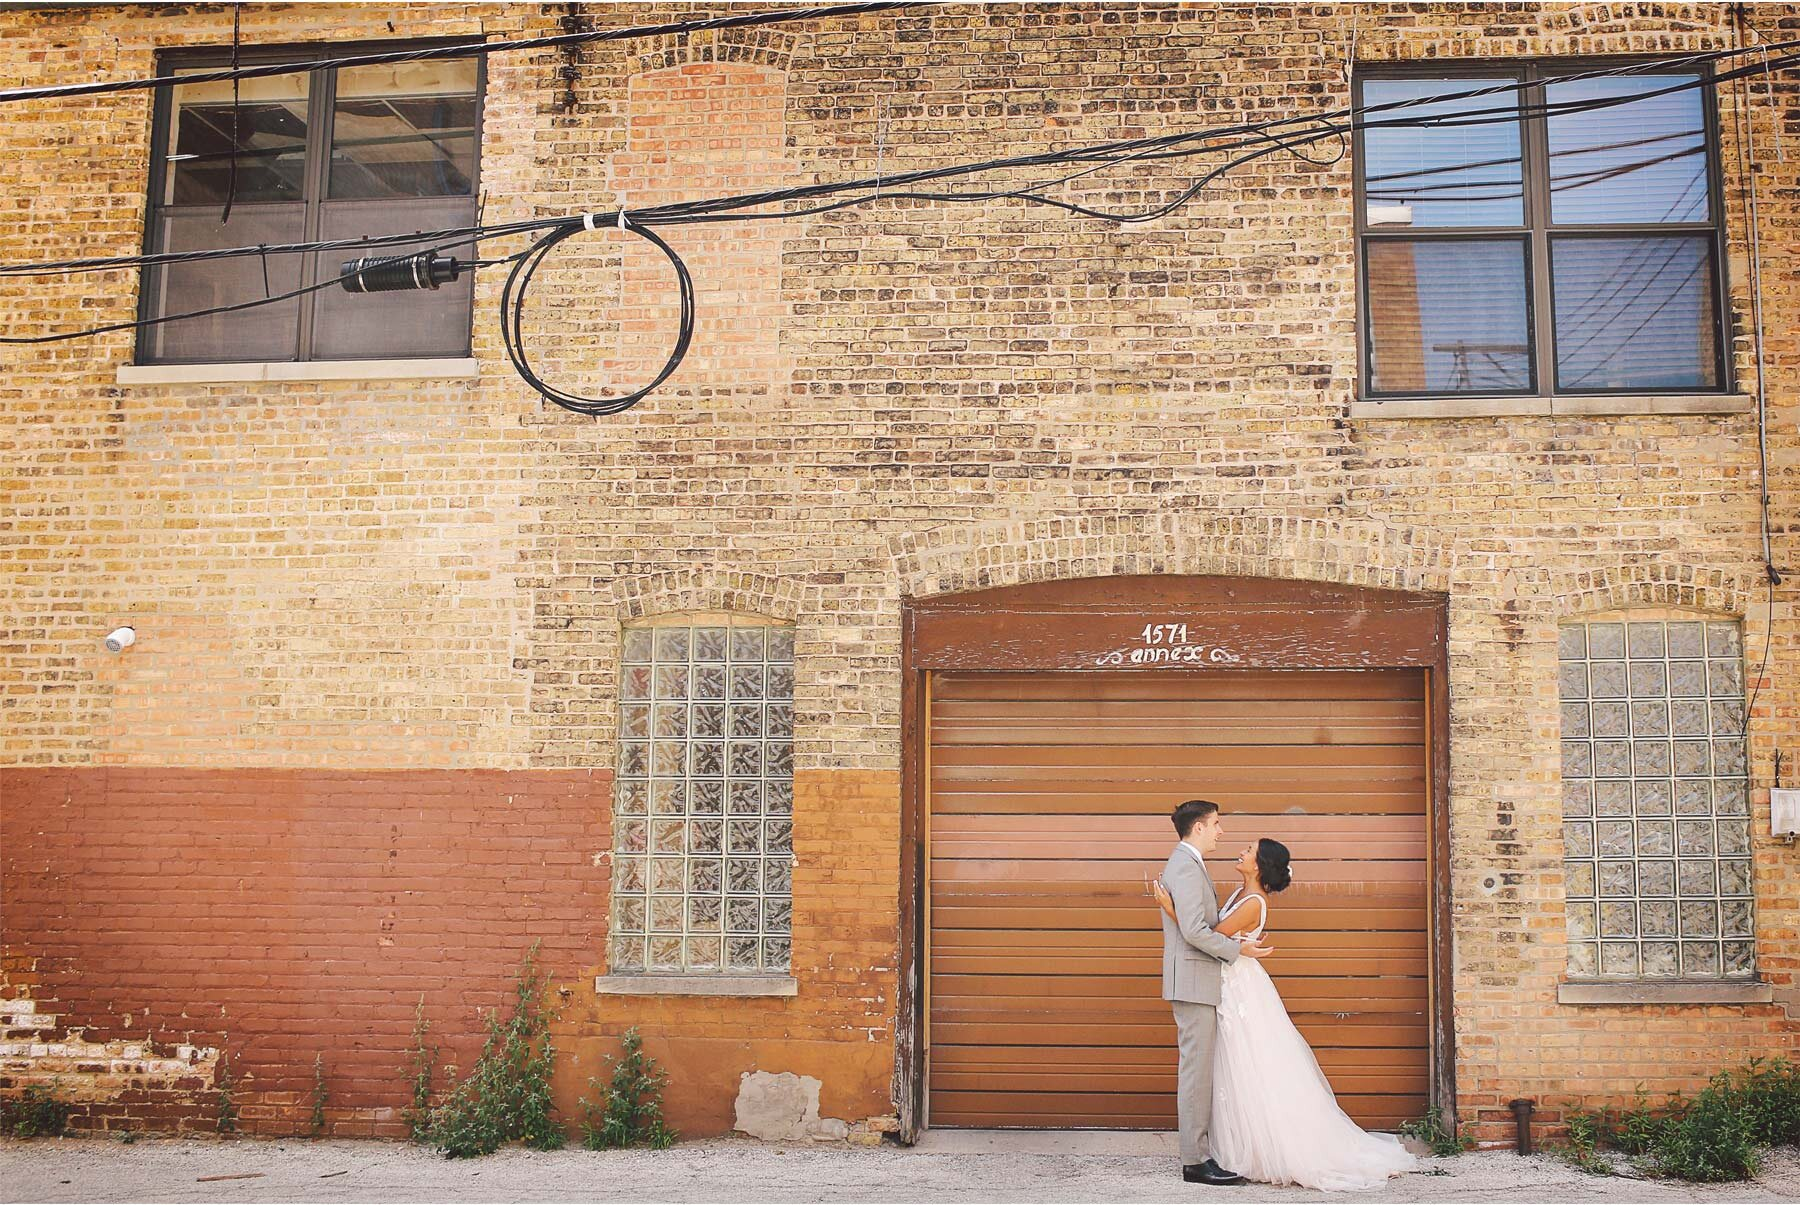 03-Wedding-by-Andrew-Vick-Photography-Chicago-Illinois-Bride-Groom-First-Look-Downtown-Brownstone-Ashley-and-Nicholas.jpg